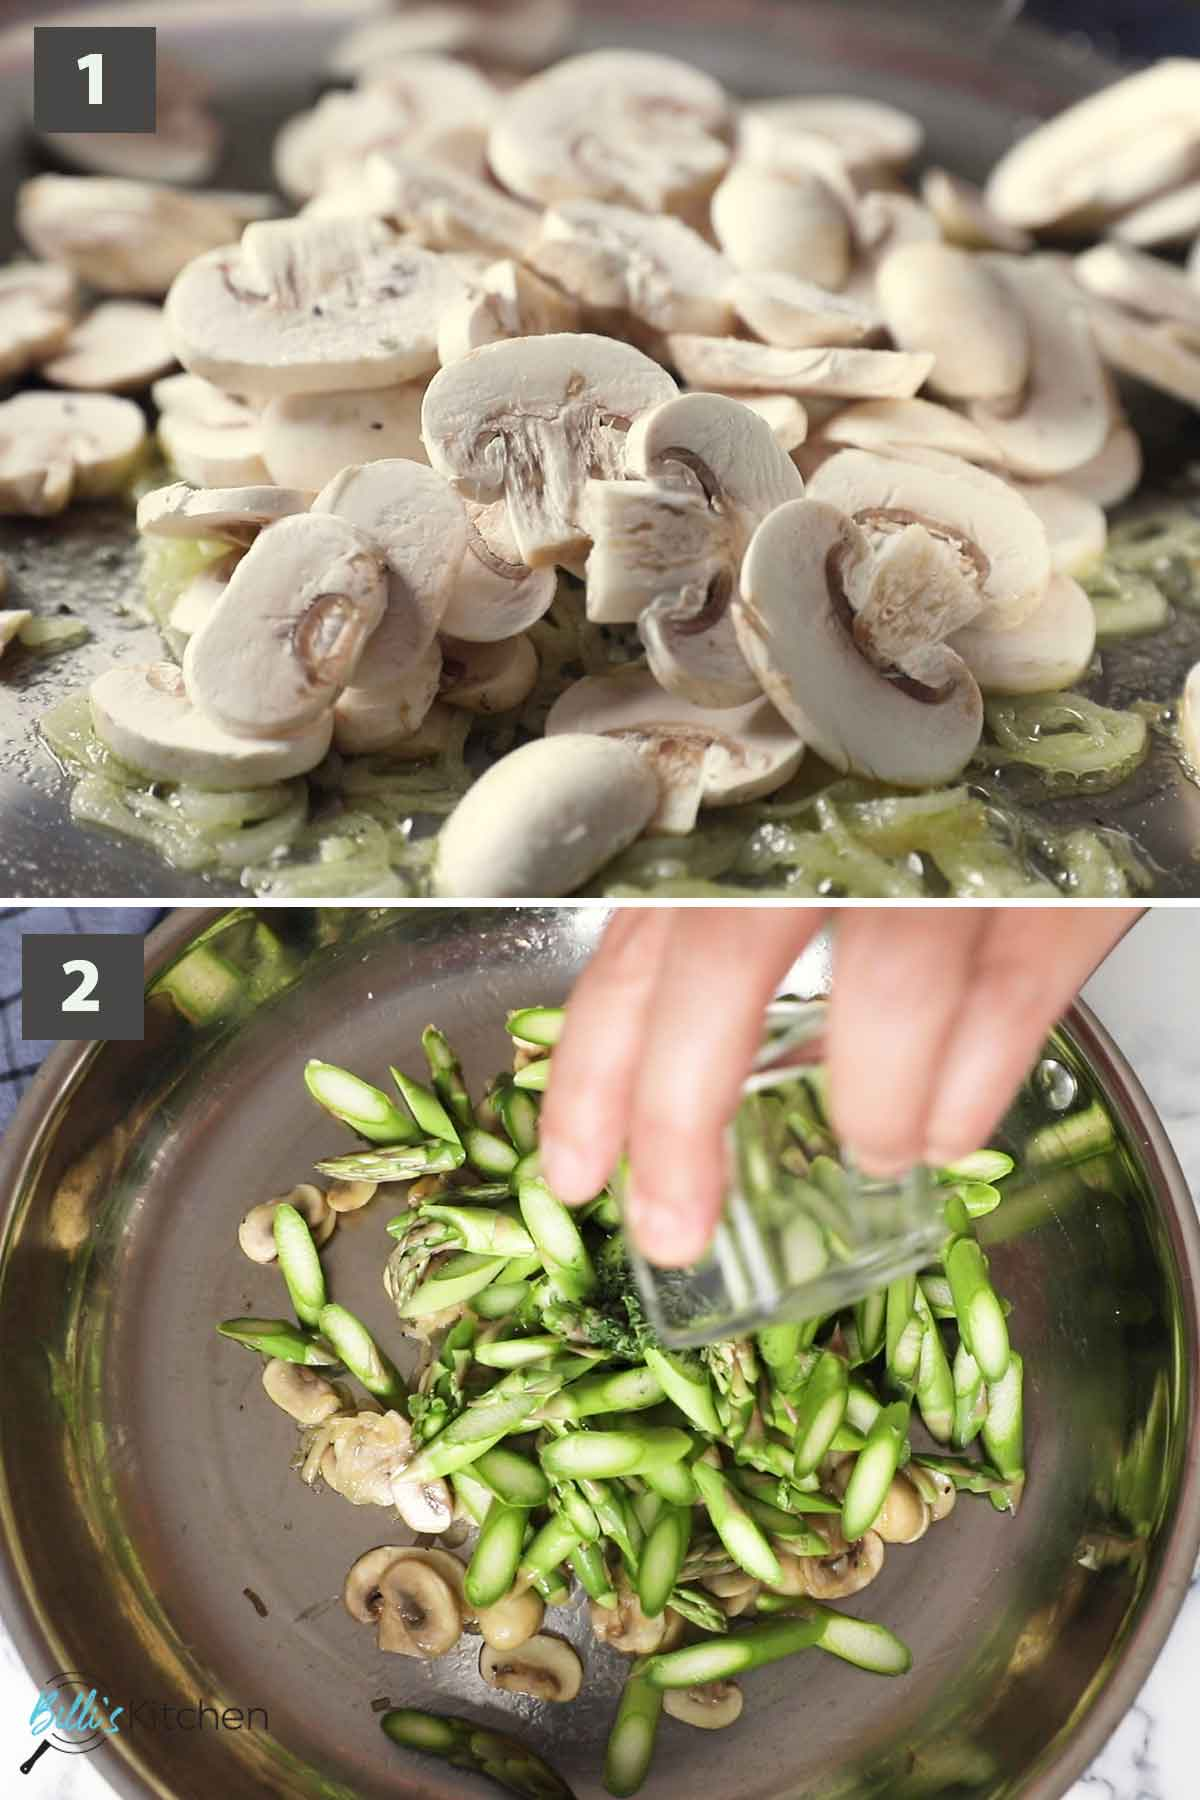 First part of a collage of images showing the step by step process on how to prepare mushroom asparagus pasta at home.